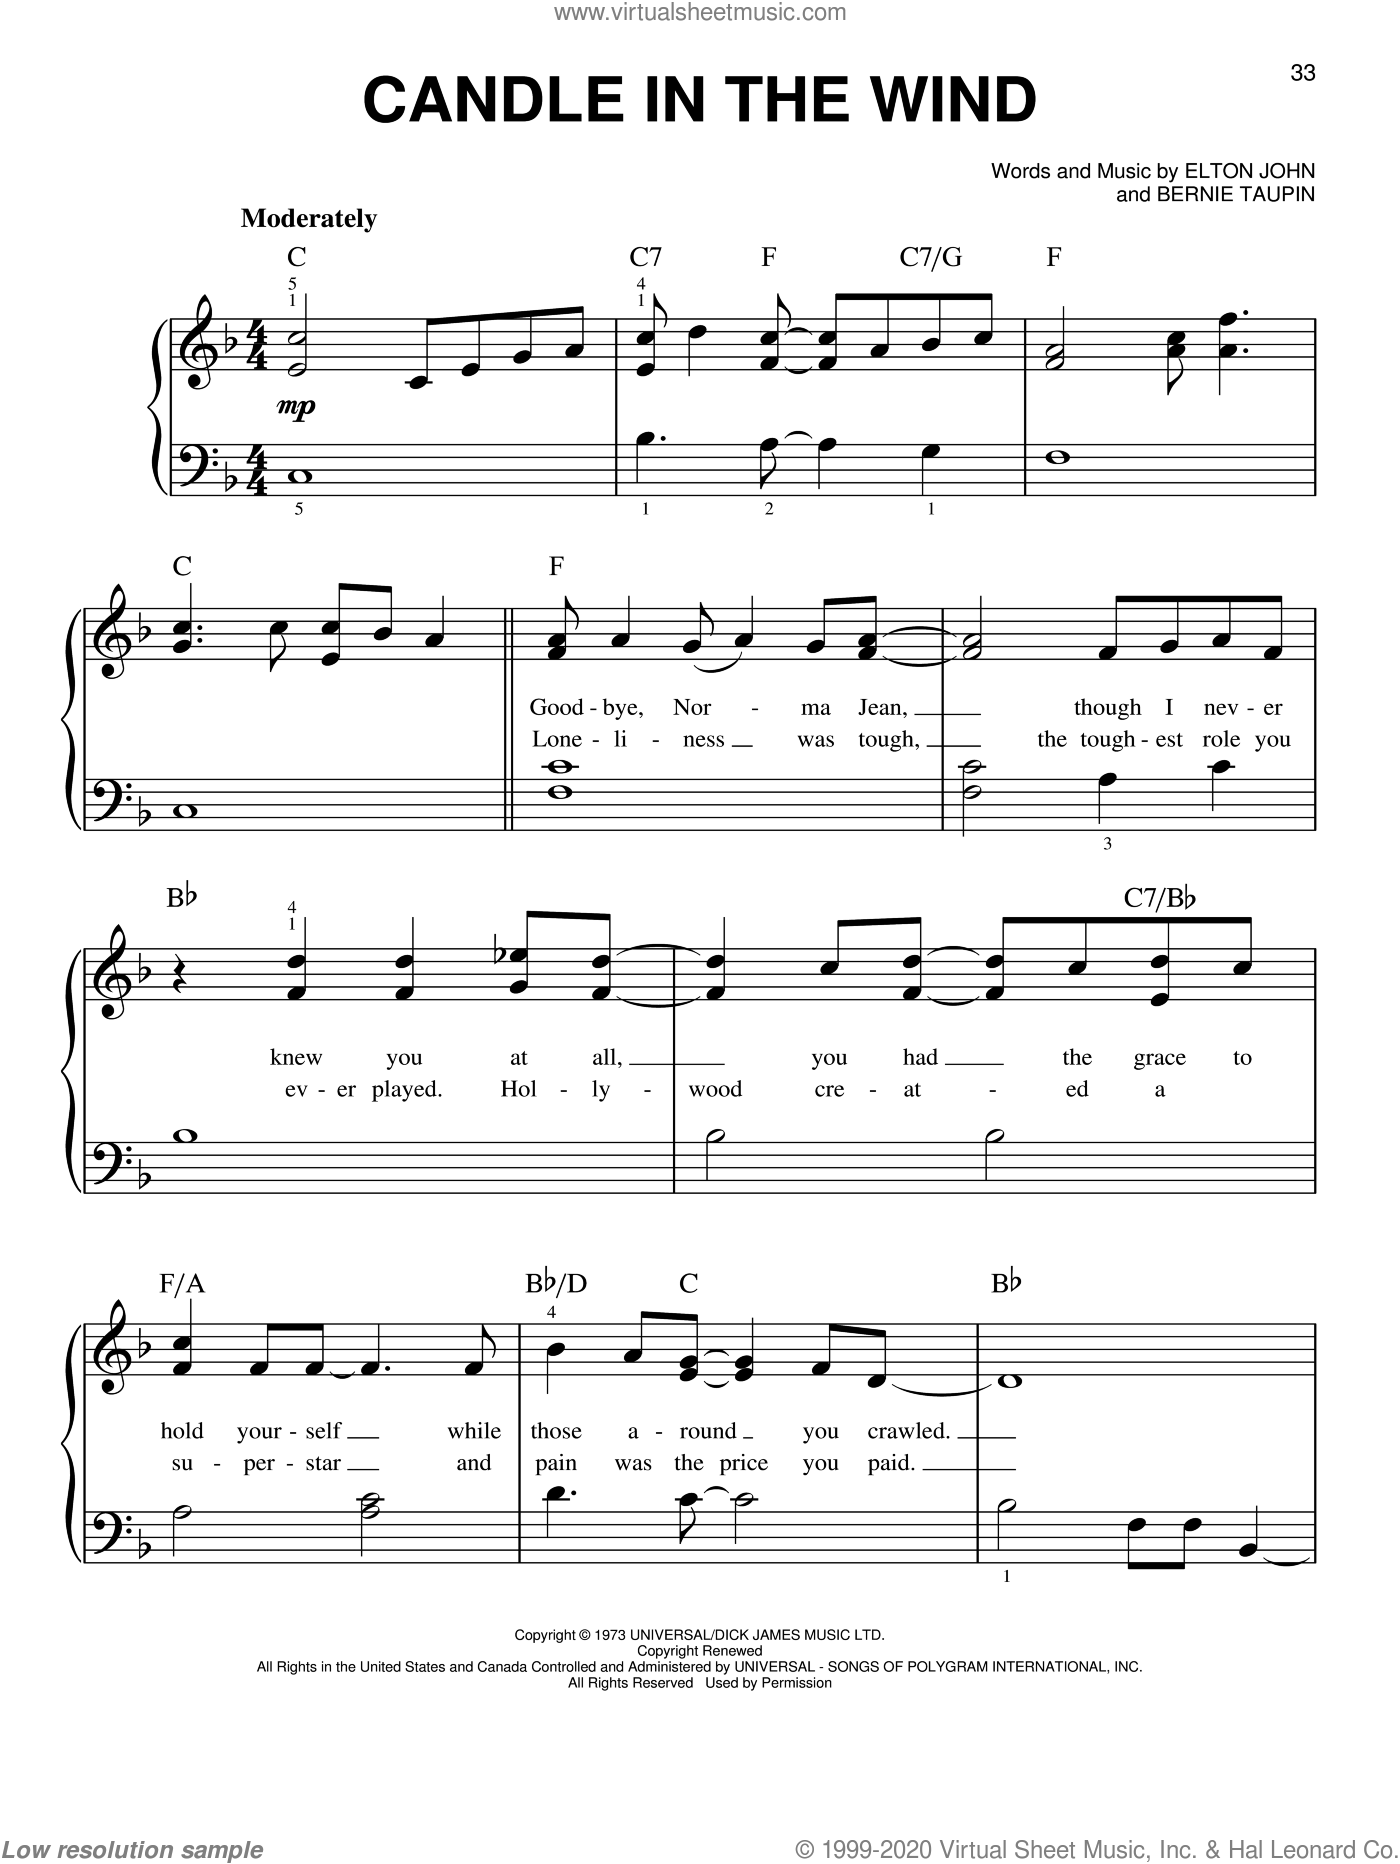 Candle In The Wind, (easy) sheet music for piano solo by Elton John and Bernie Taupin, easy skill level